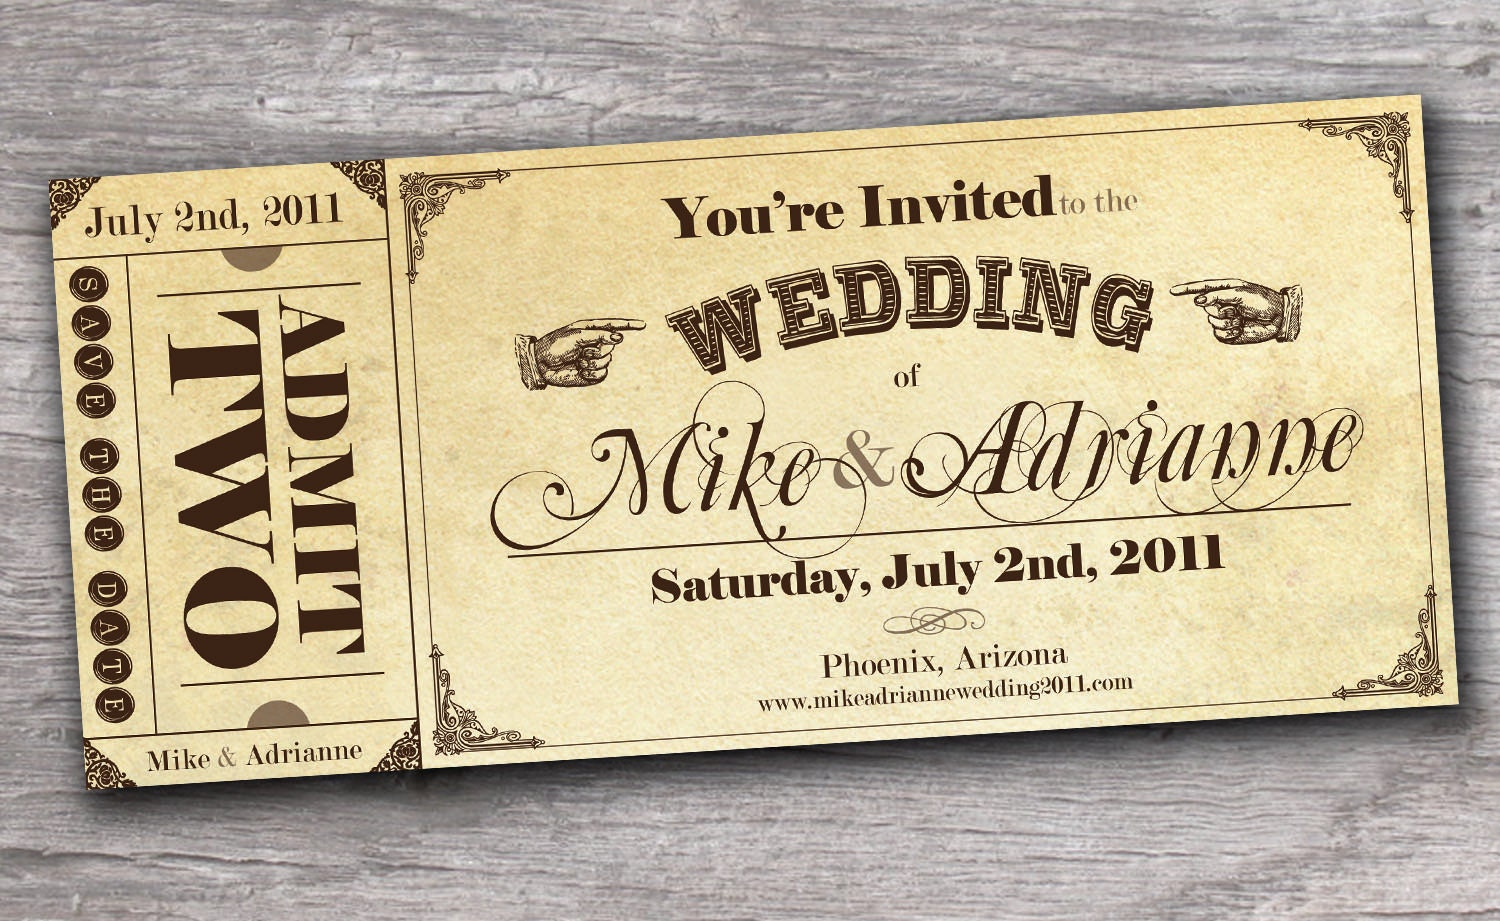 Wedding Invitation Tickets: Vintage Western Ticket Save The Date Wedding Invitation Sample